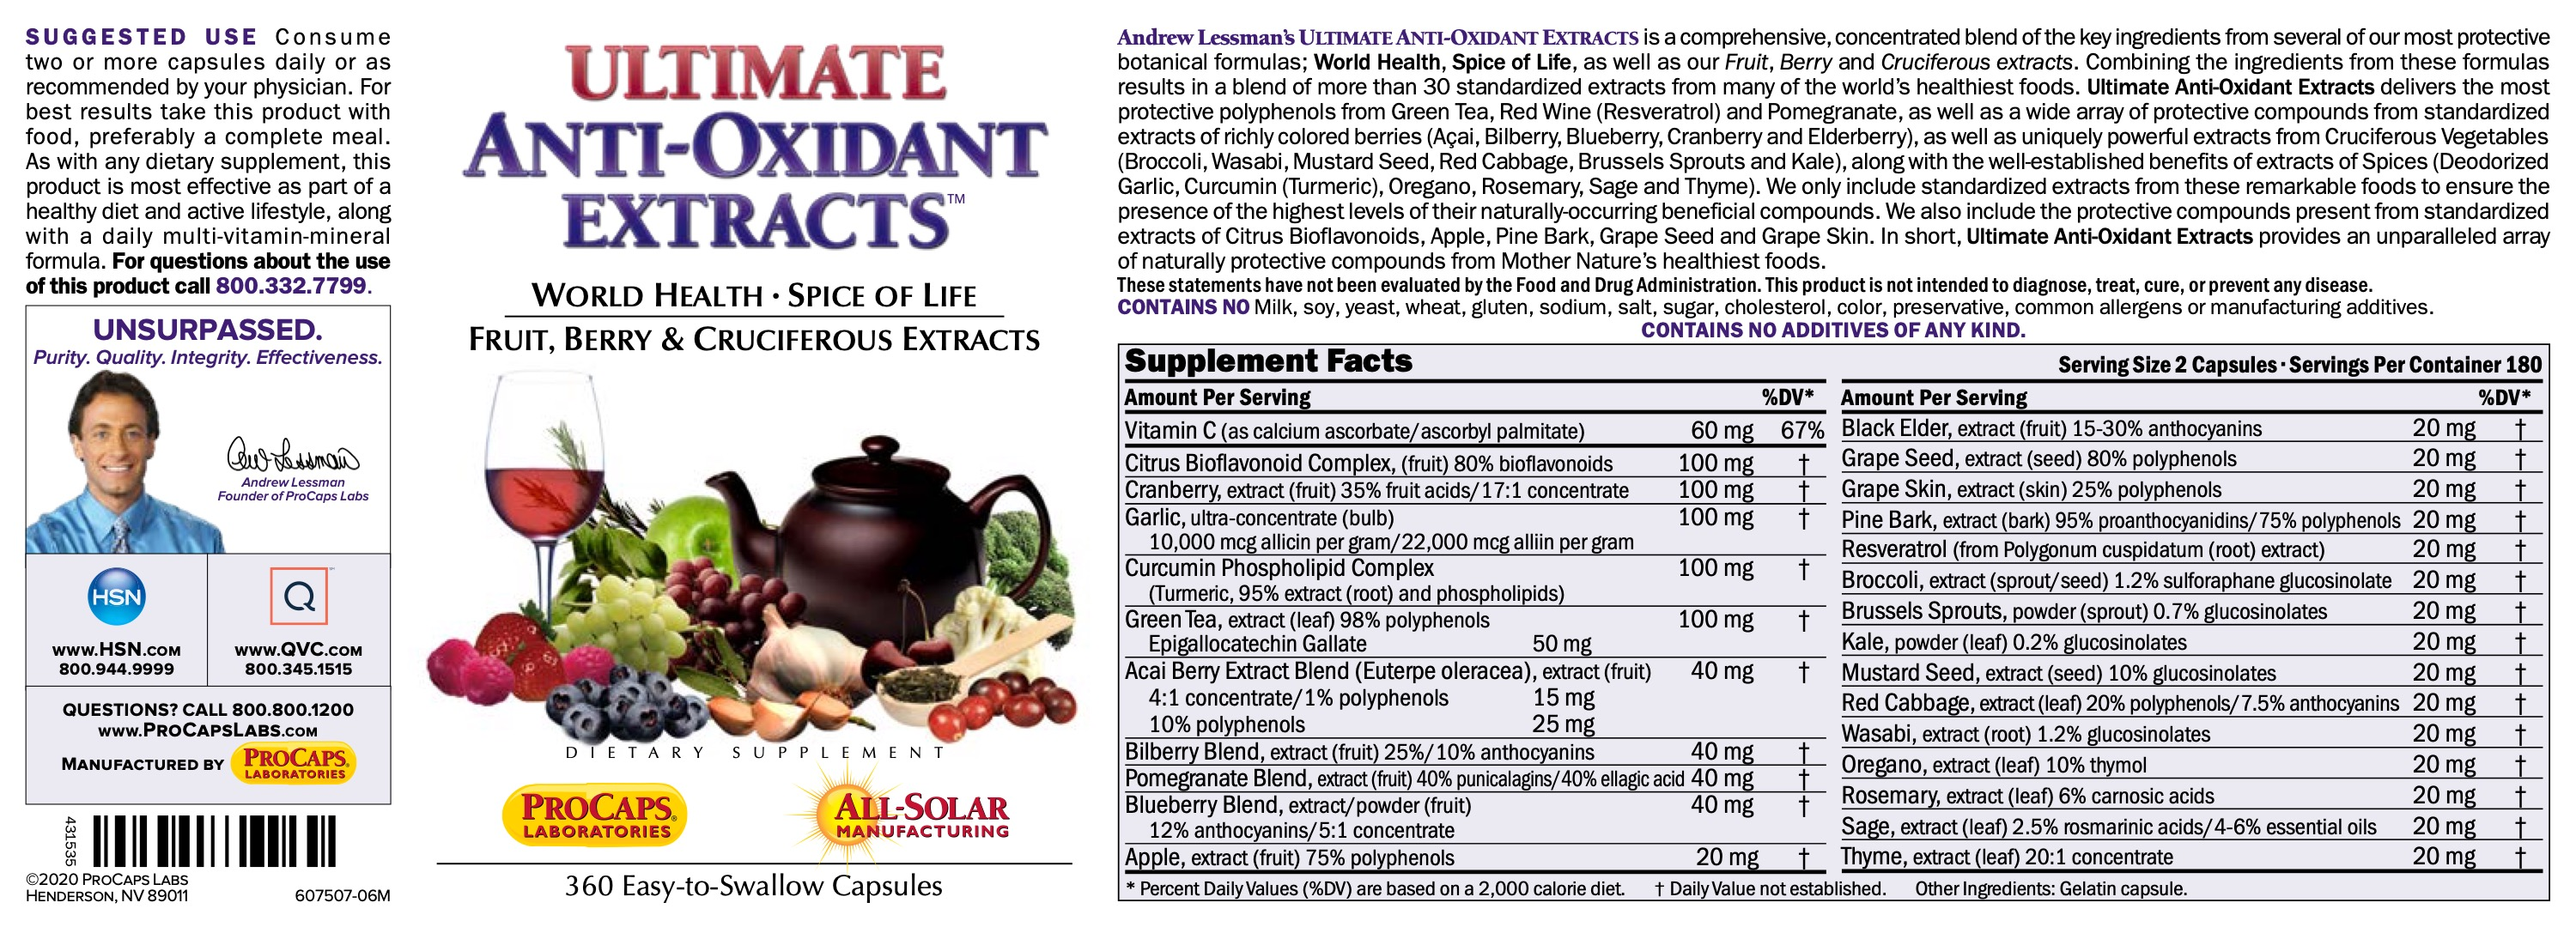 Ultimate-Anti-Oxidant-Extracts-Capsules-Anti-oxidants